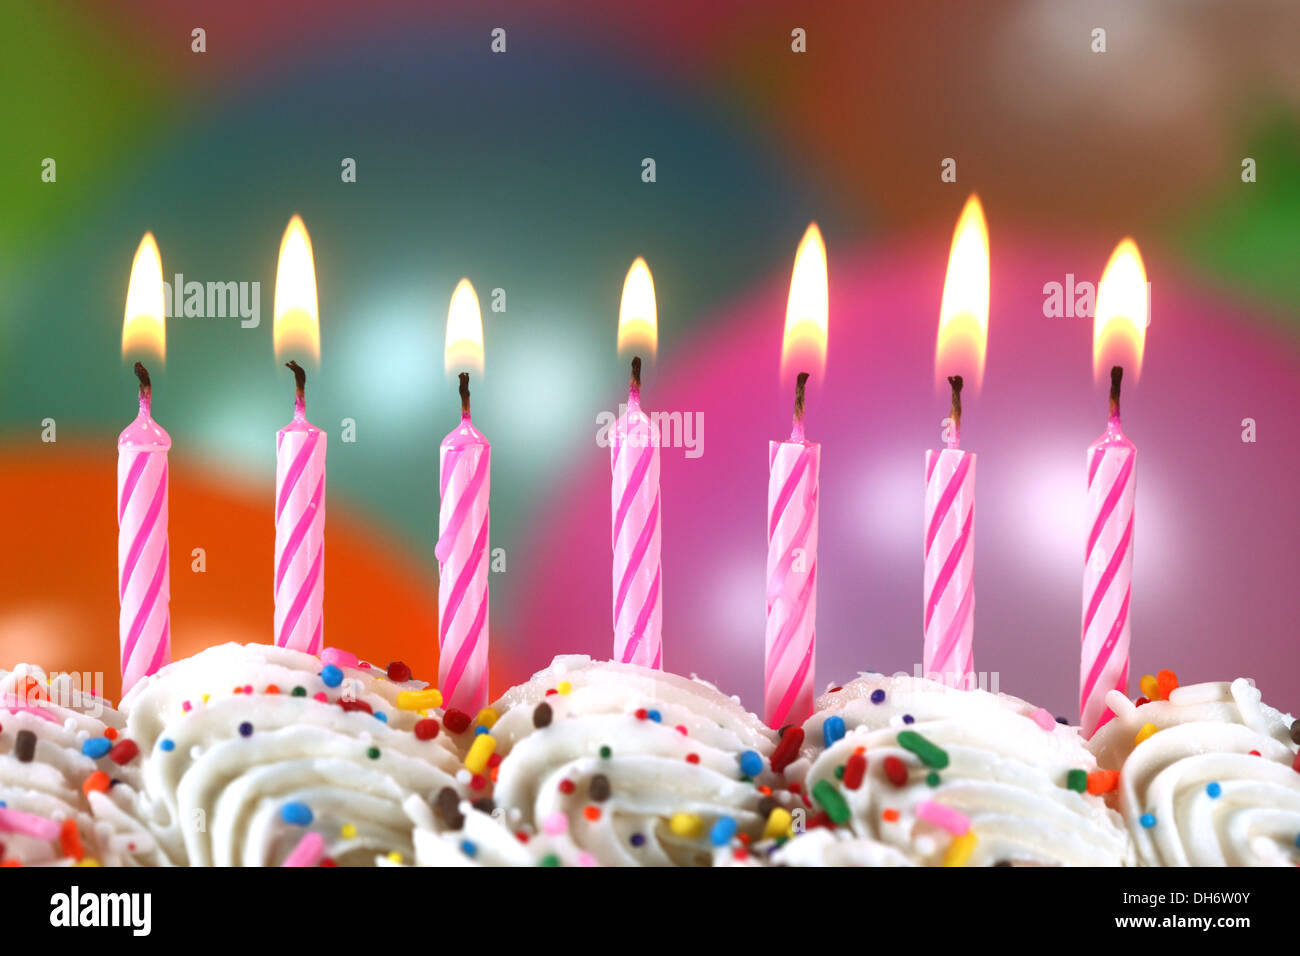 Birthday Cake Balloons Images ~ Happy birthday celebration with balloons candles and cake stock